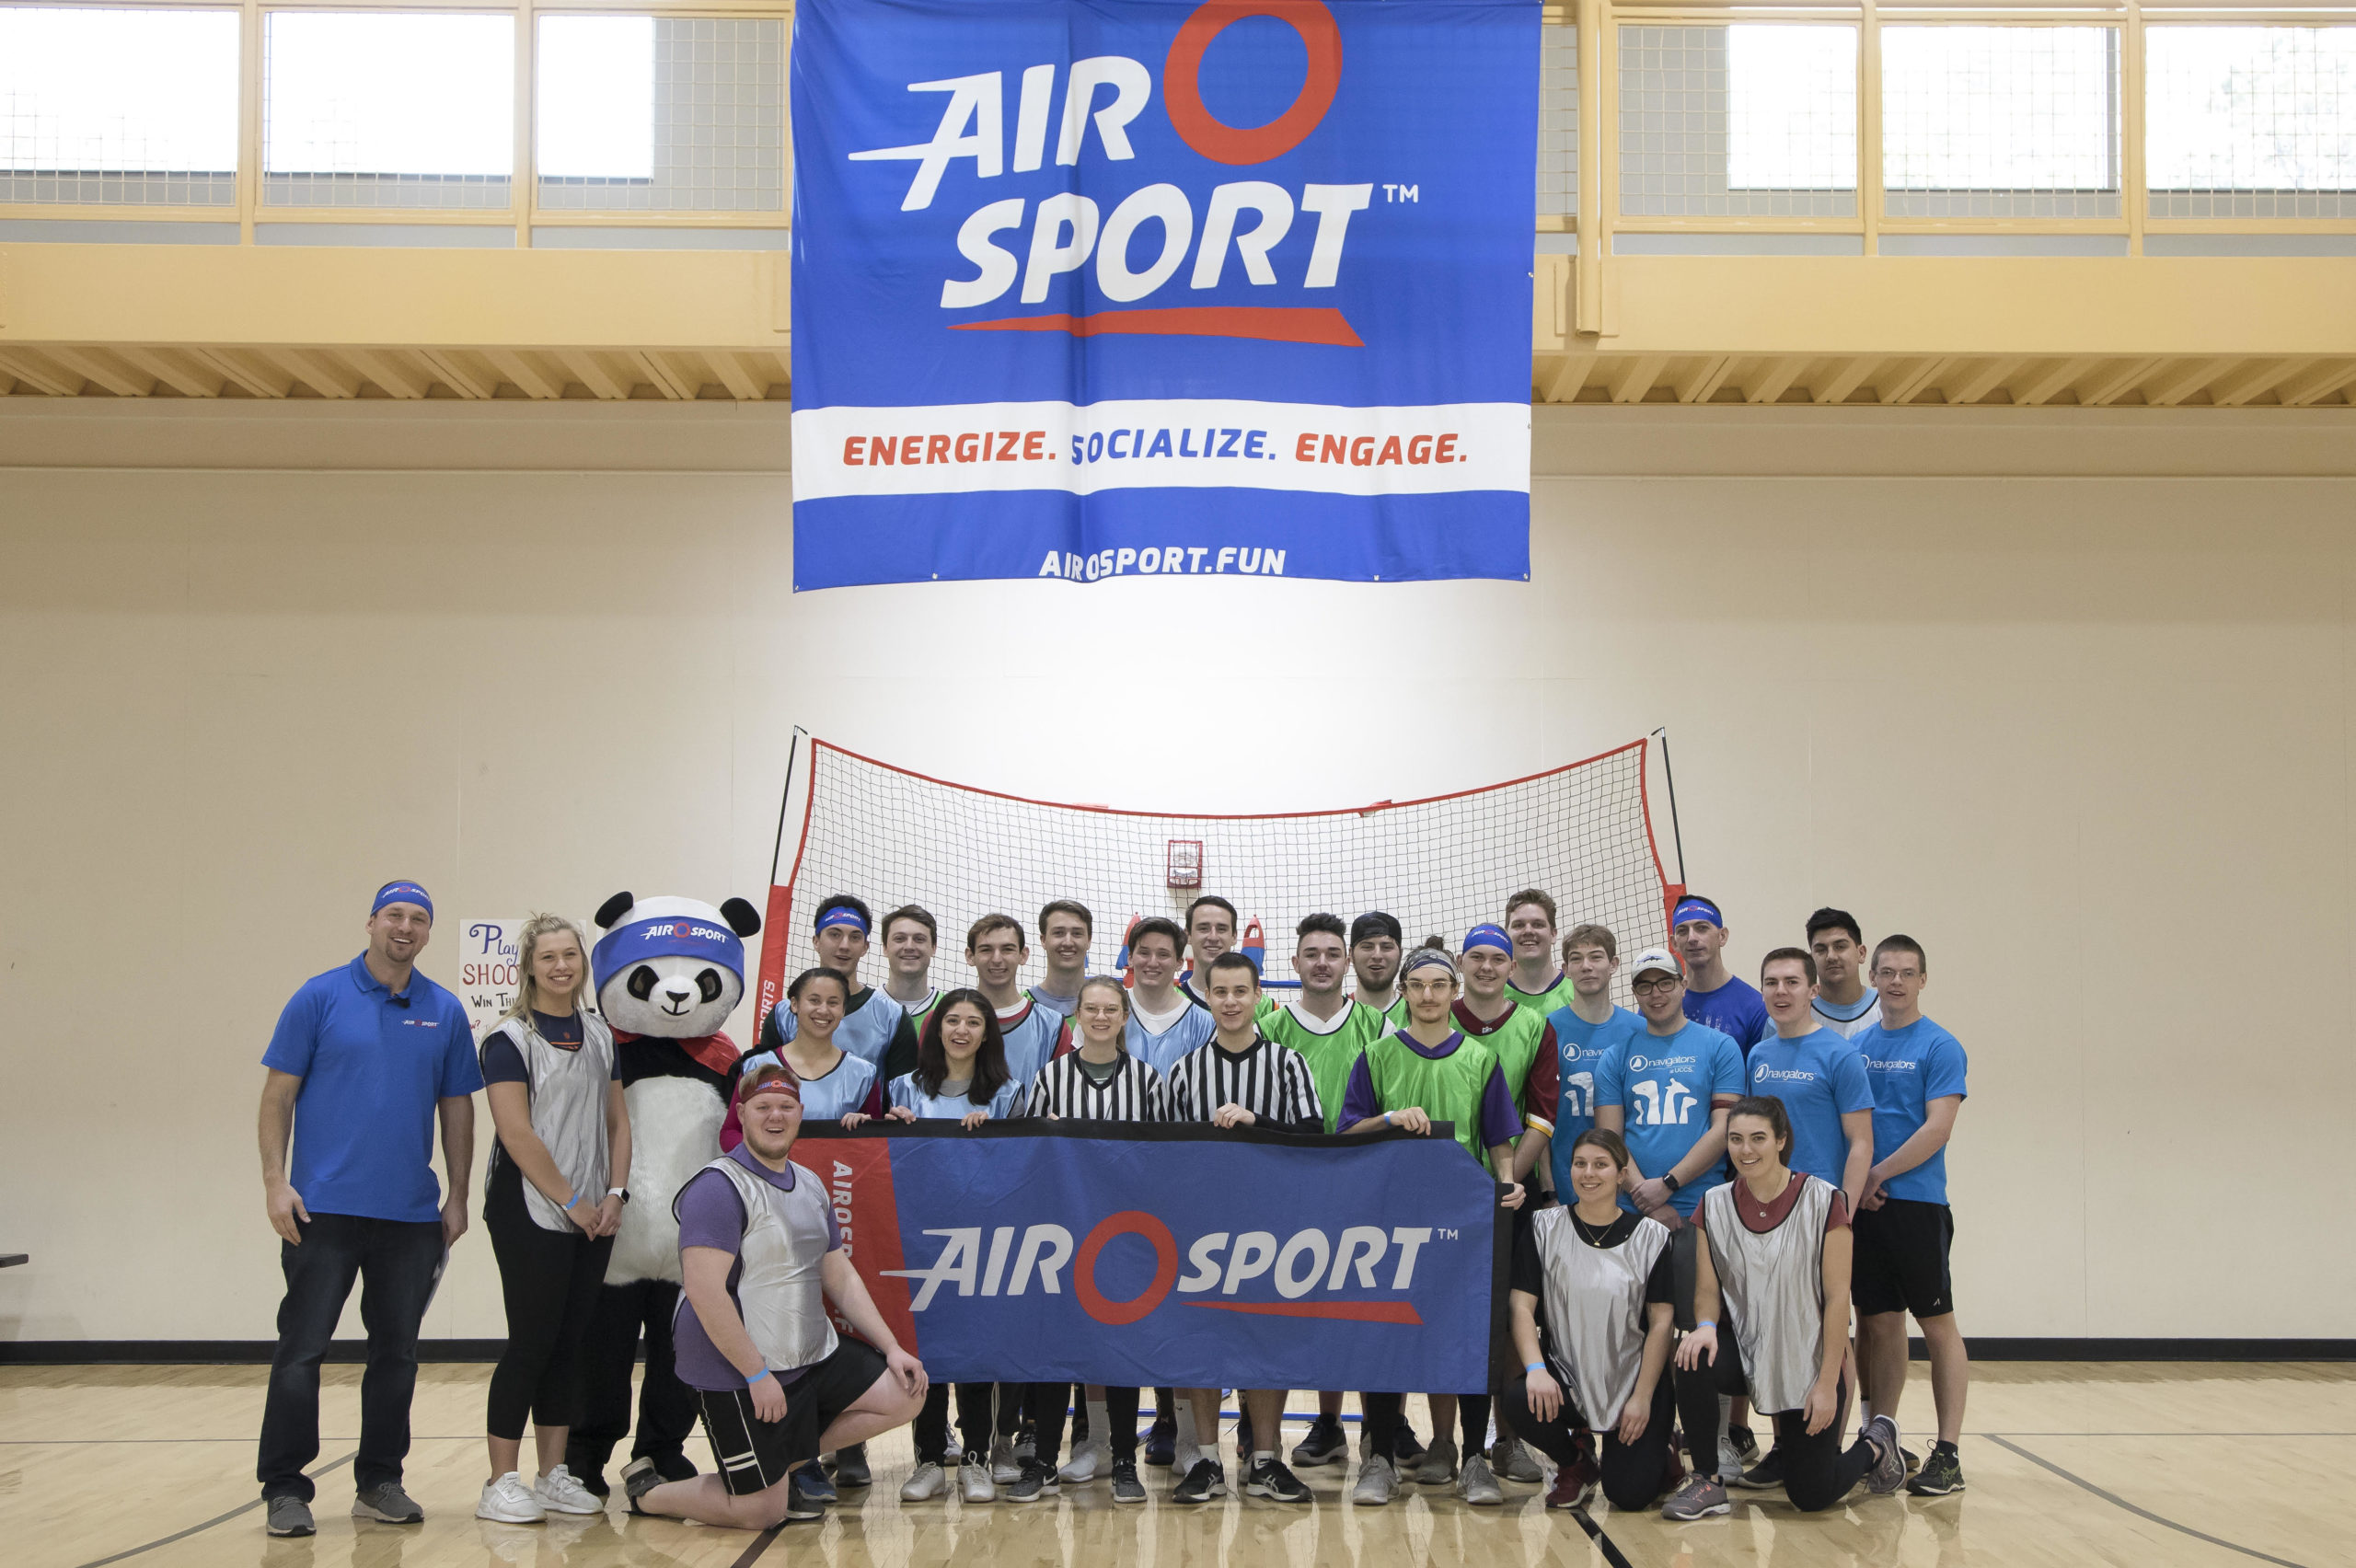 UCCS hosted a Feb 2020 event supported by the YMCA where the Air O Sport tournament guide was developed.